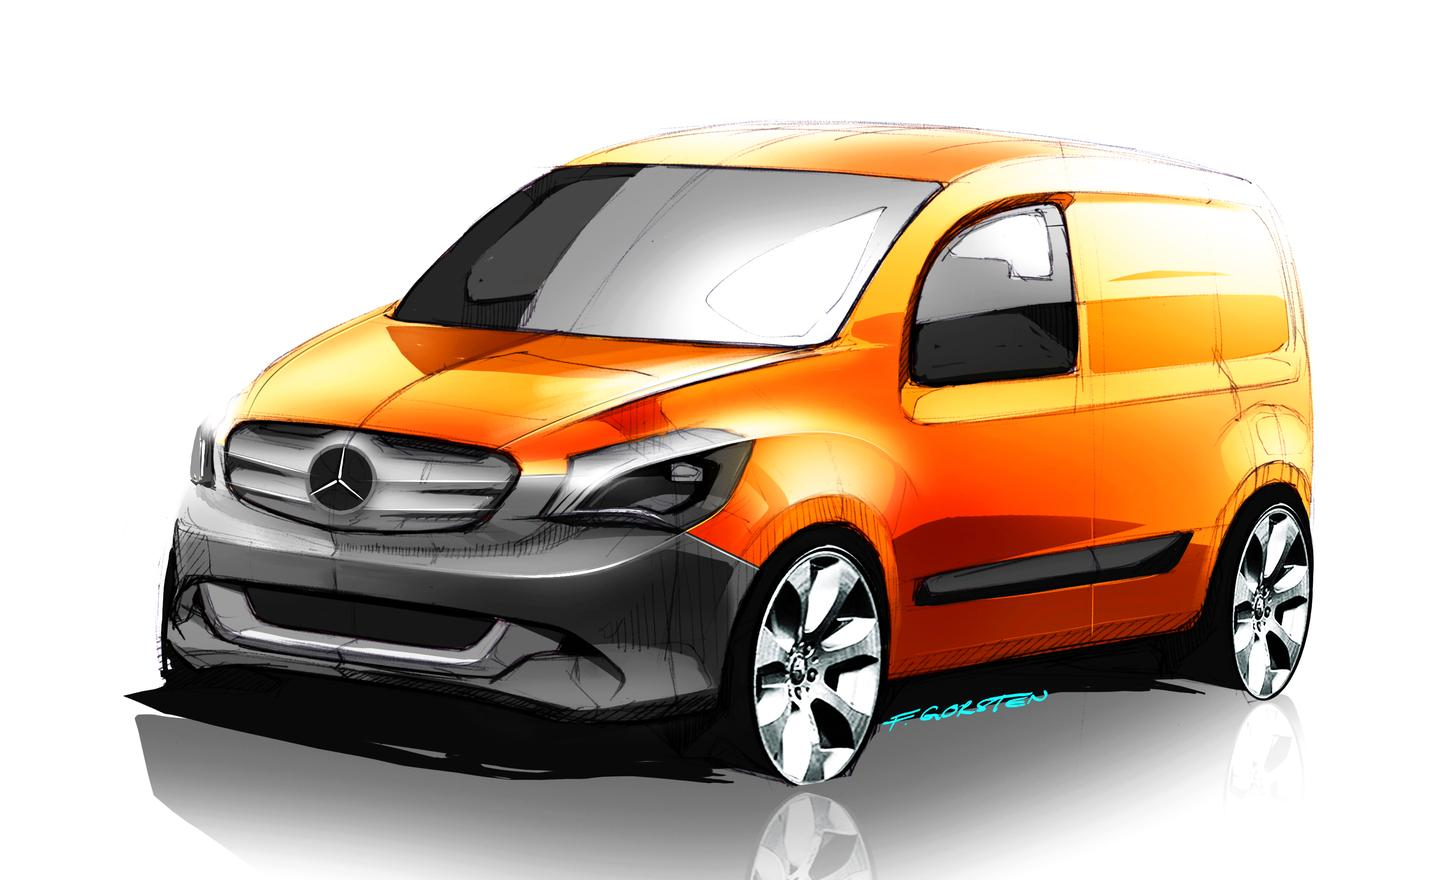 The Mercedes Benz Citan will be available as an electric vehicle